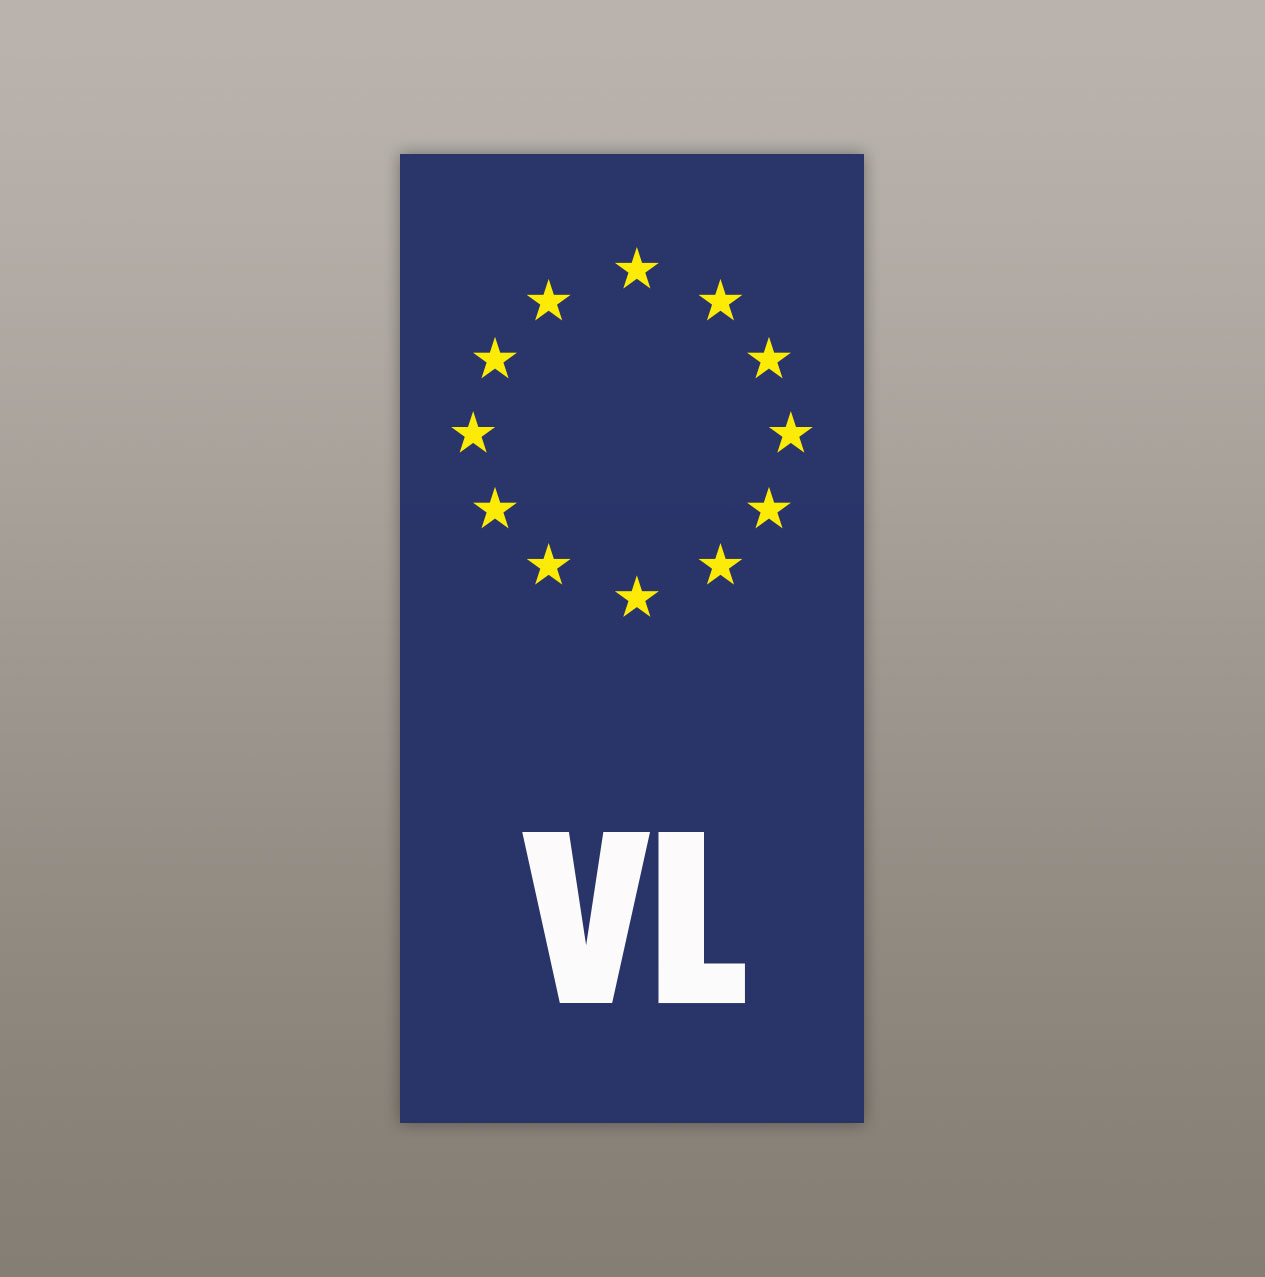 Sticker 'Vlaanderen in Europa' (autoplaat B-model) image